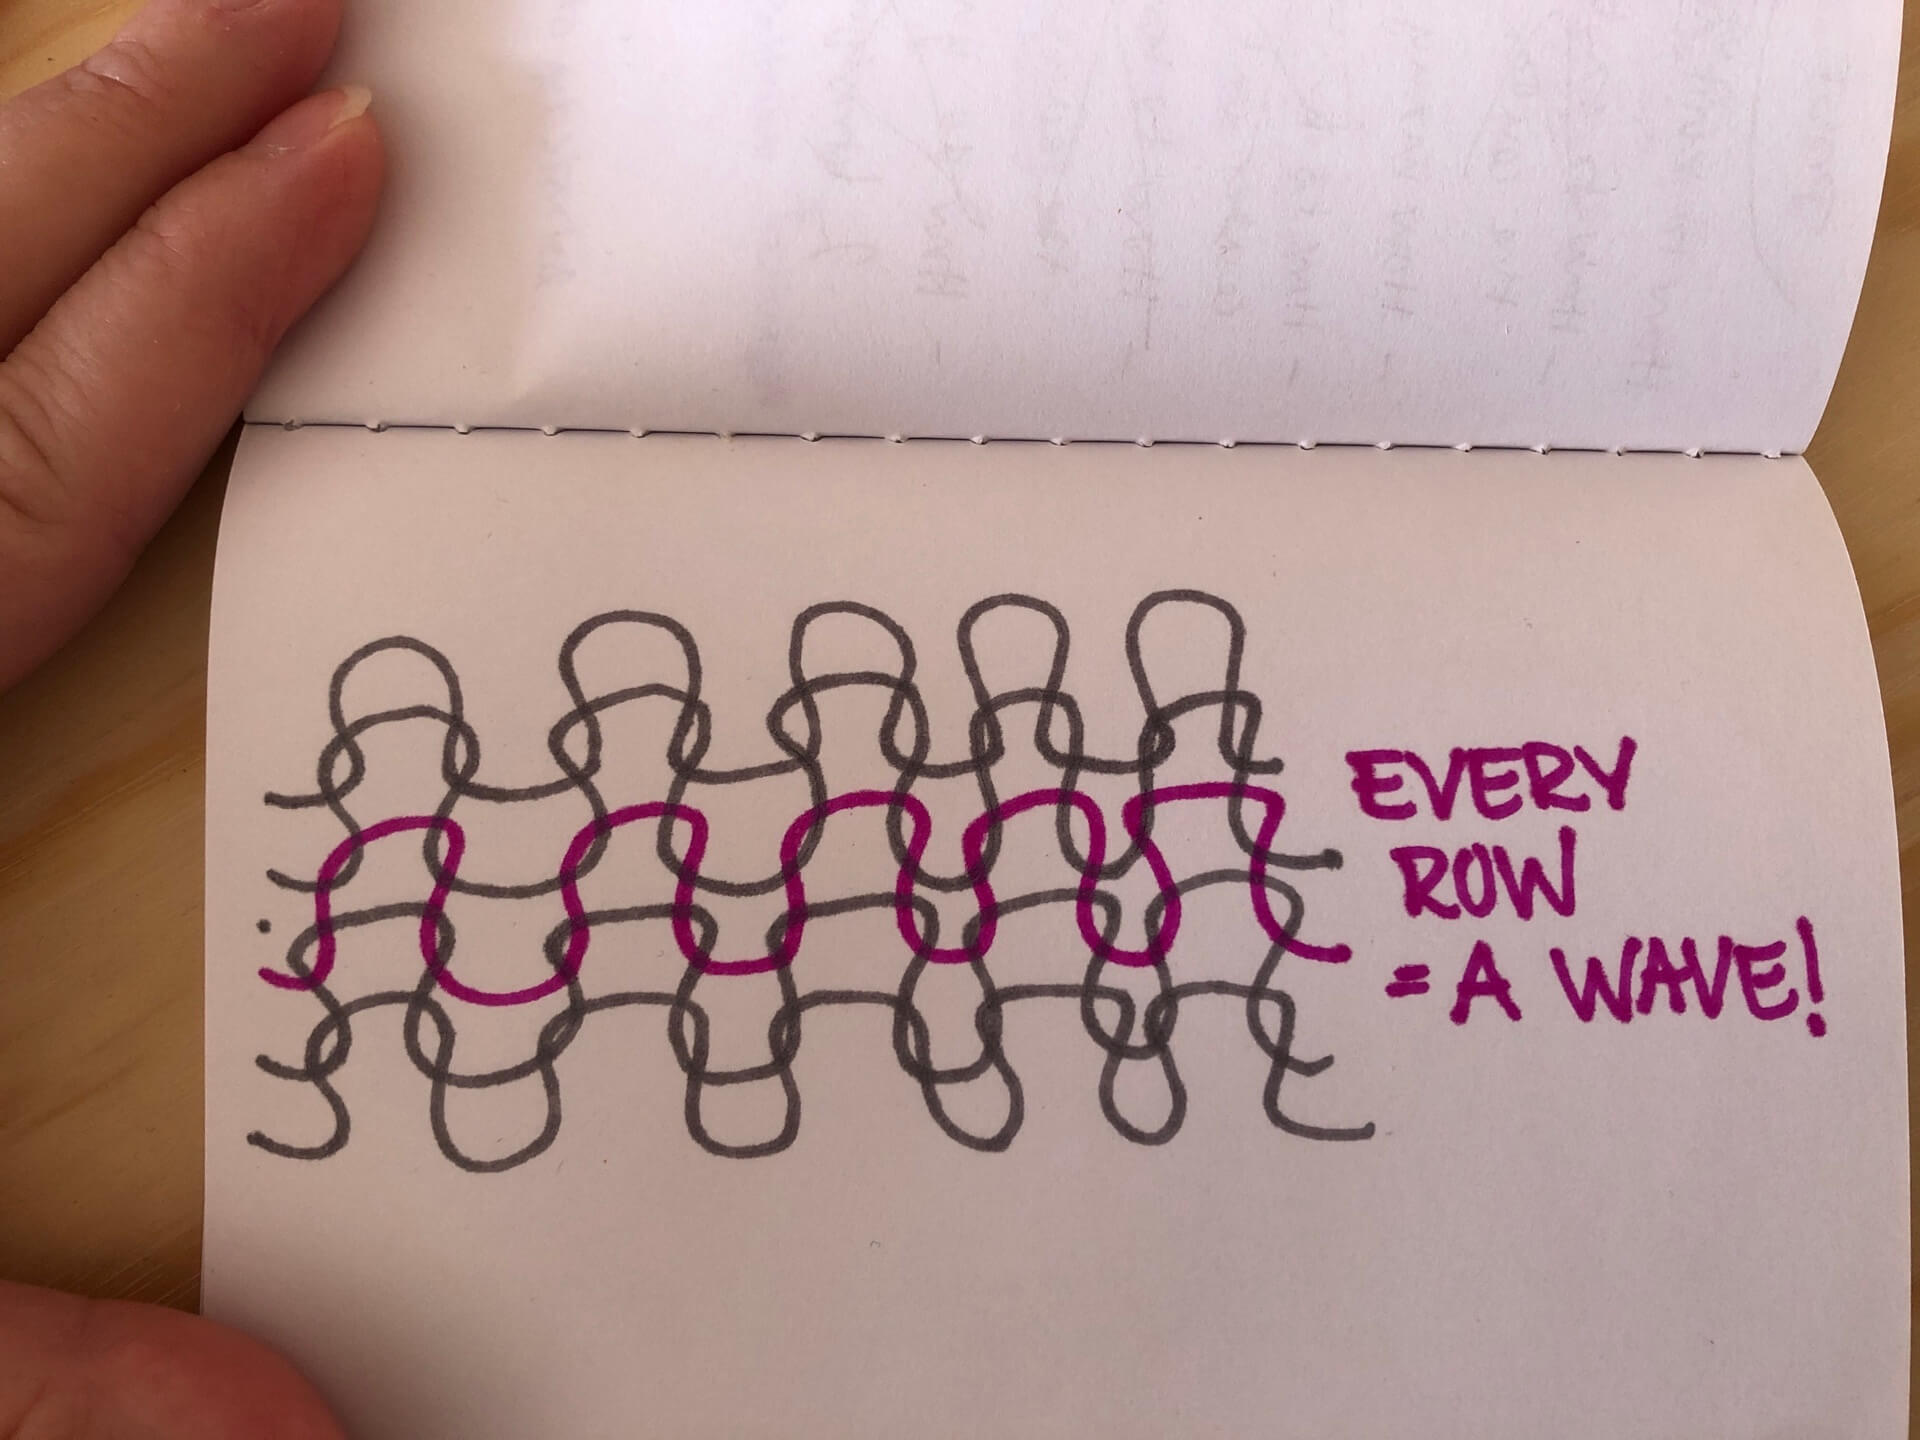 a drawing showing how every row of knitted fabric equals a wave.